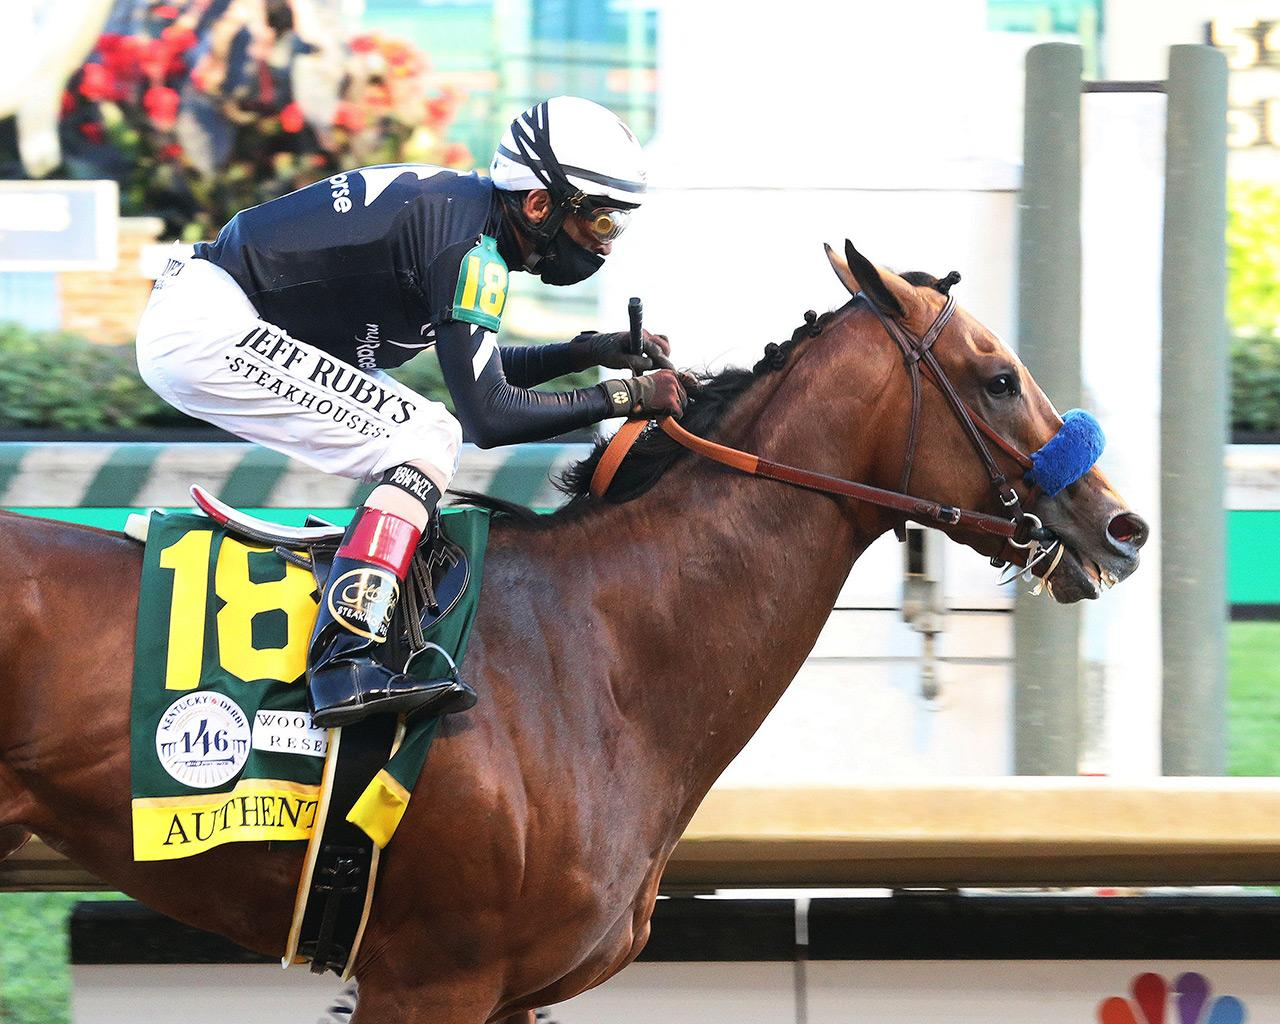 AUTHENTIC---The-Kentucky-Derby---146th-Running---09-05-20---R14---CD---Tight-Finish-01